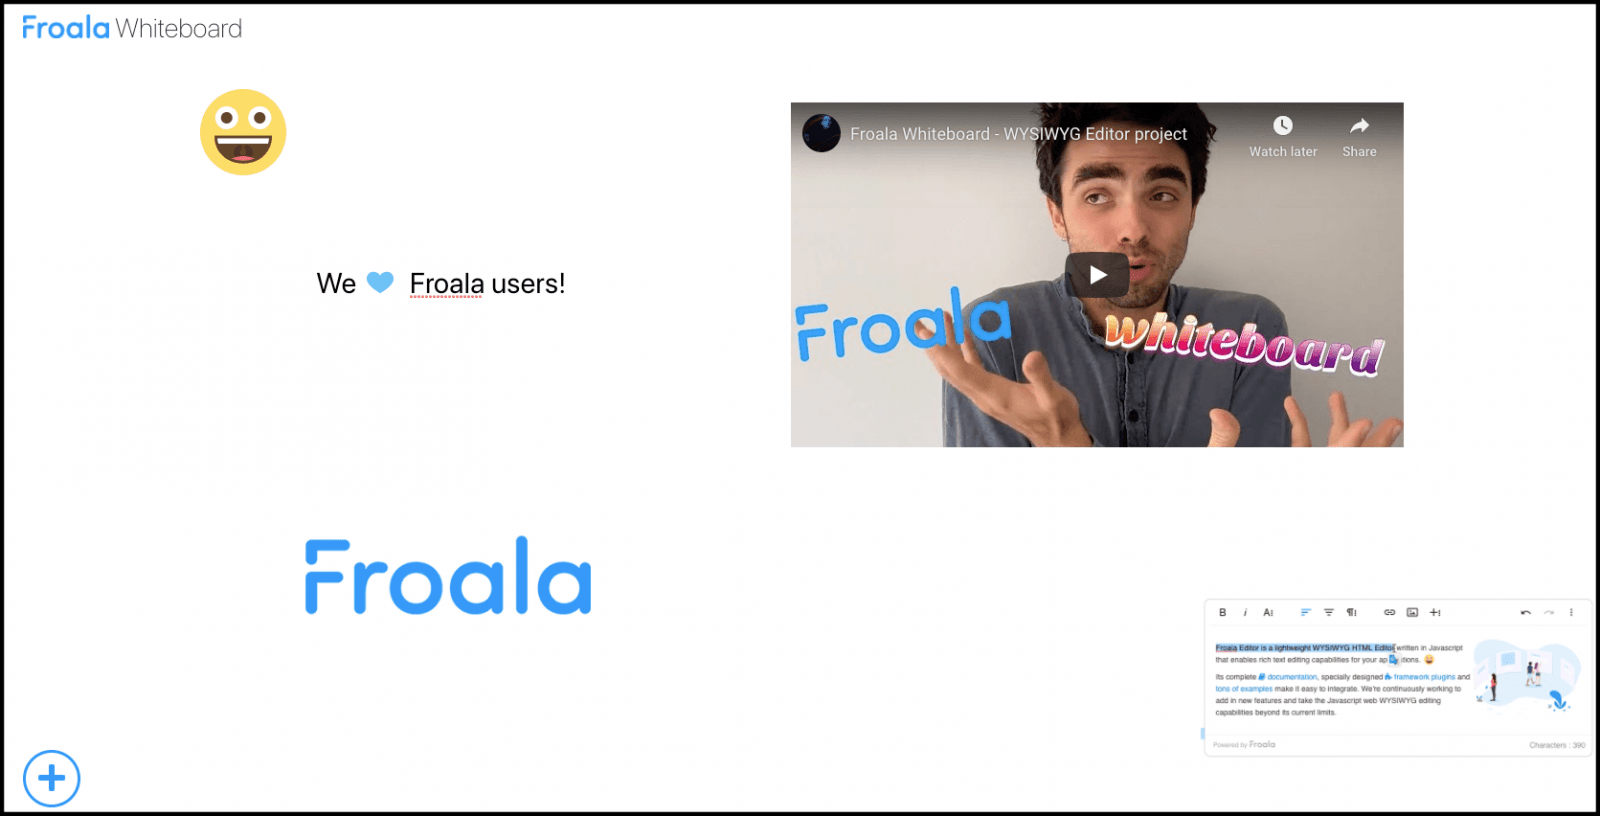 Experience the Whiteboard at https://froala.com/wysiwyg-editor/whiteboard/.